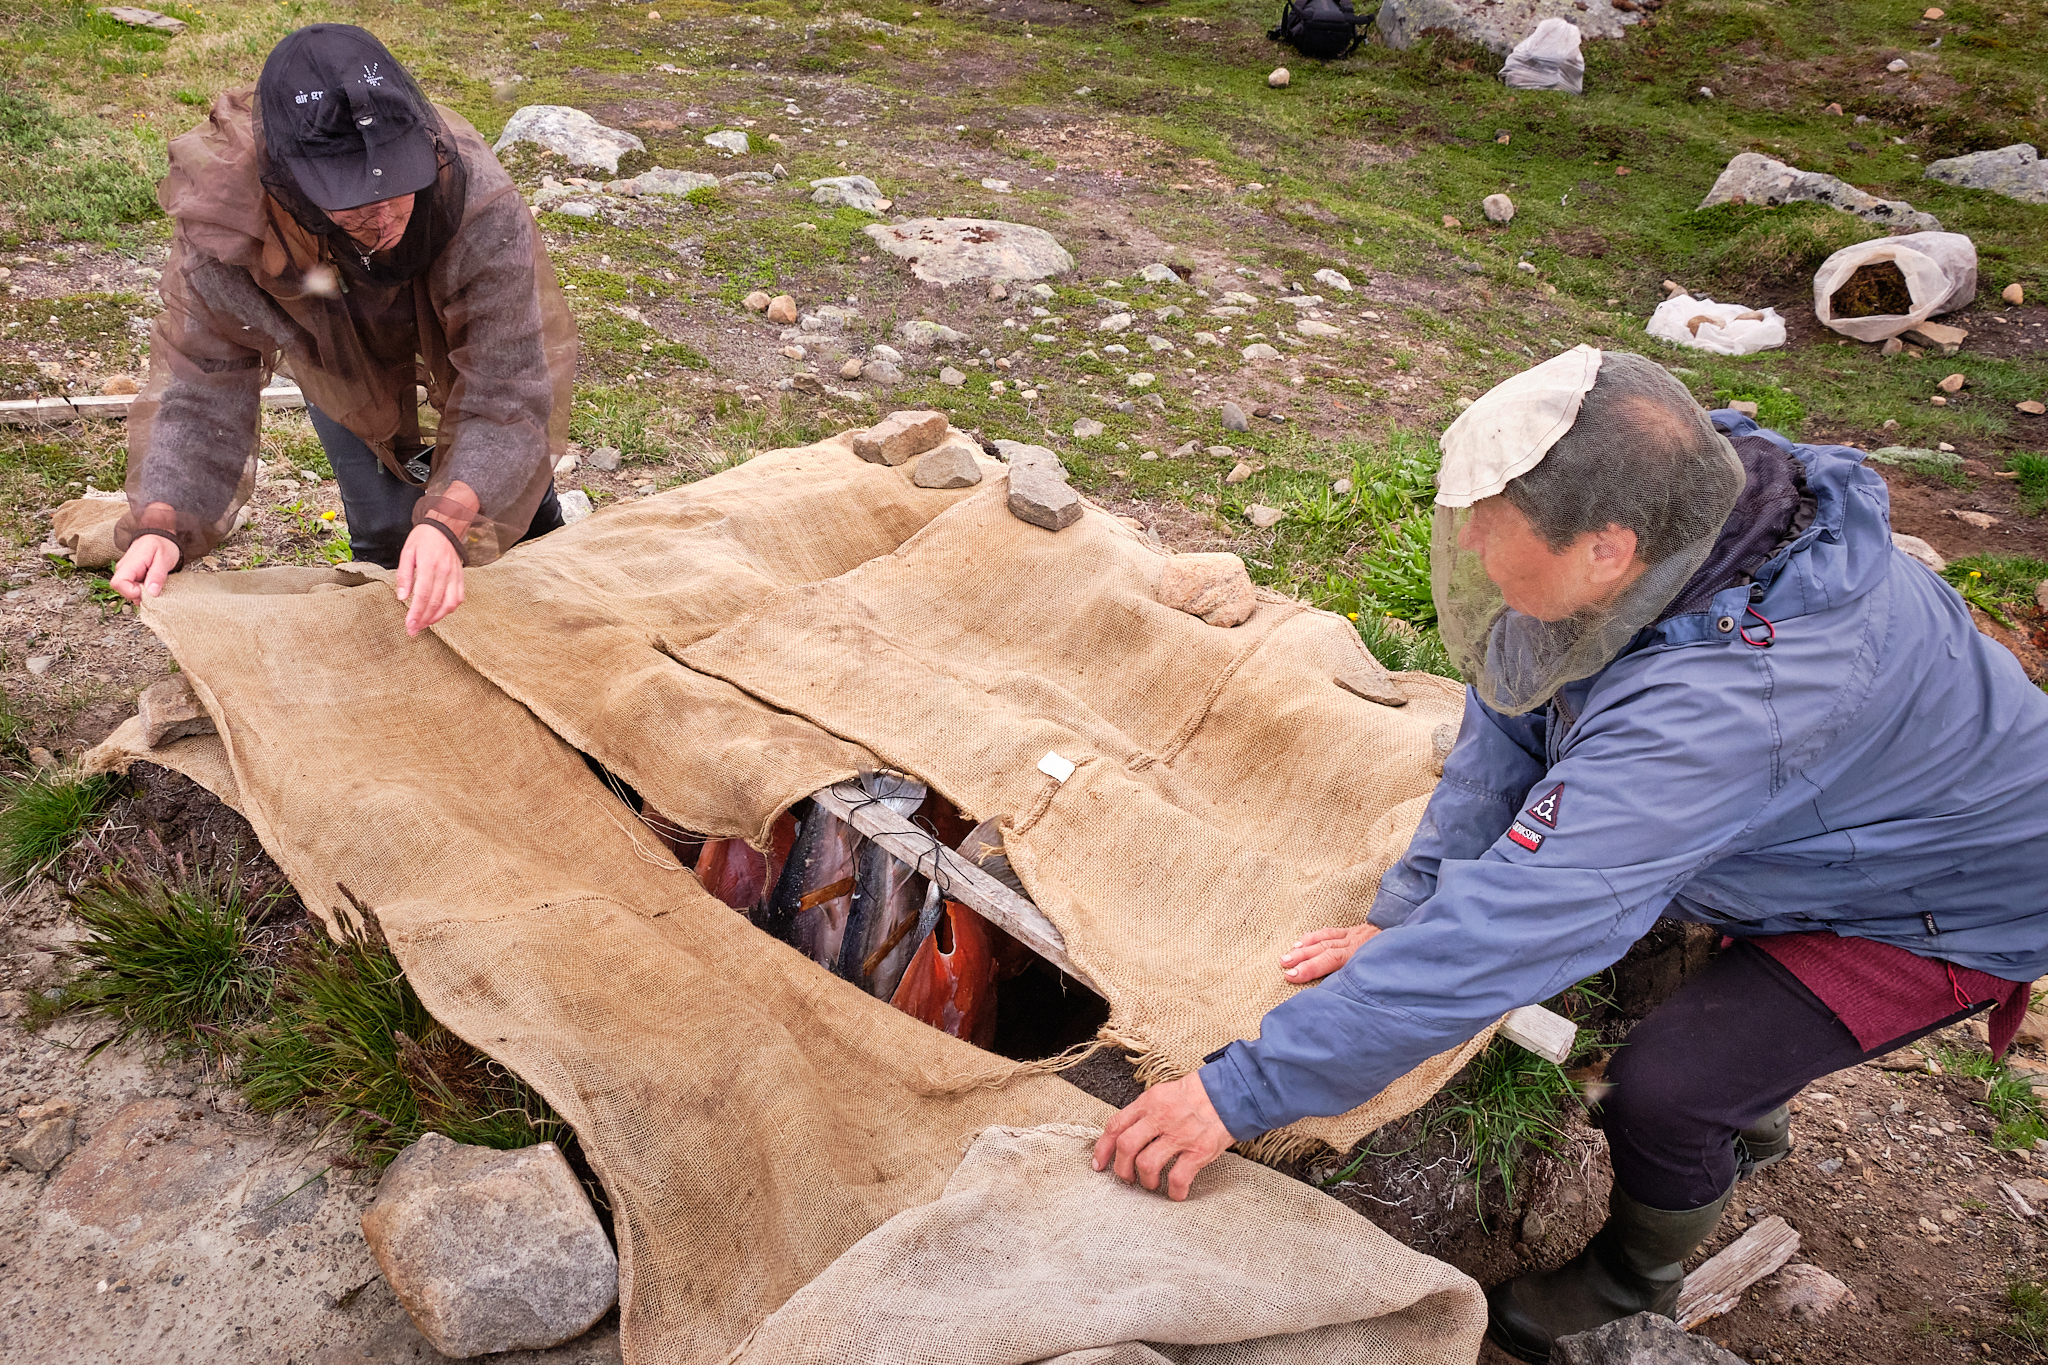 covering the fish in the smoking pit - Sassannguit - Greenland